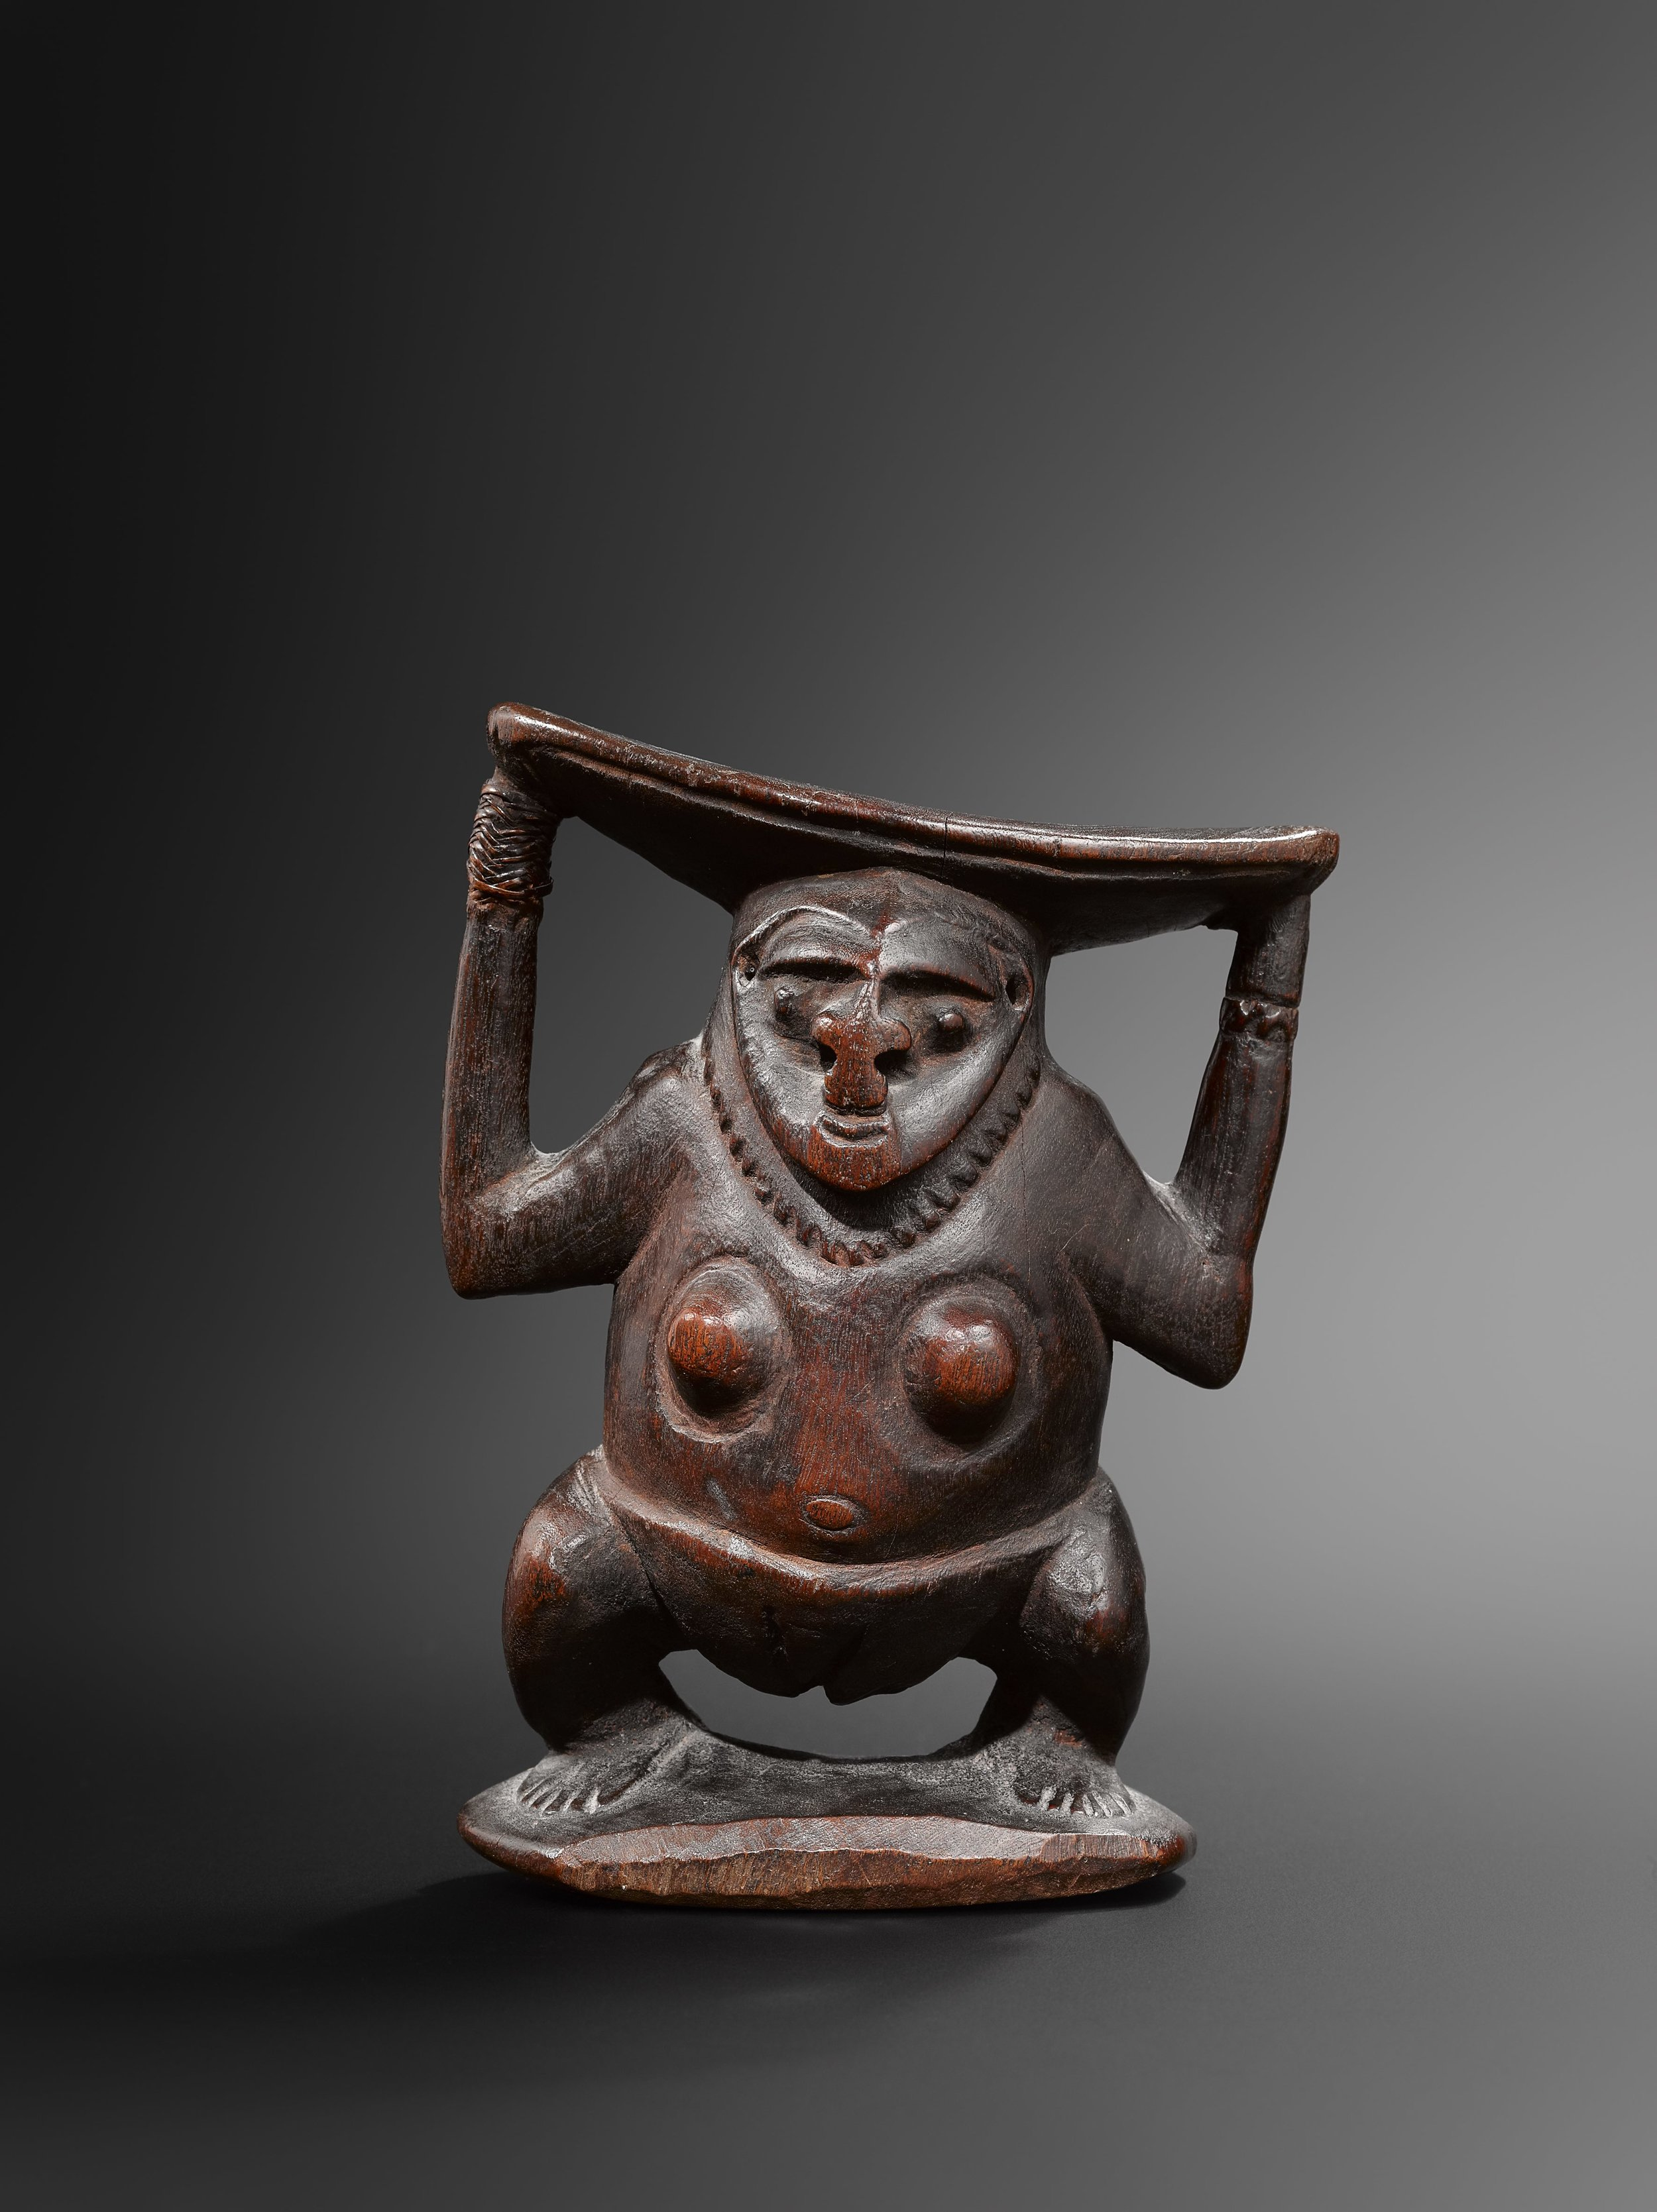 Neckrest. Bogia, coastal Madang Province. Wood. 18 cm. Collected by Father Josef Schebesta between 1910–1930. Wenthold Collection. S. V. D. Catholic Mission. © Hugues Dubois, Brussels/Paris